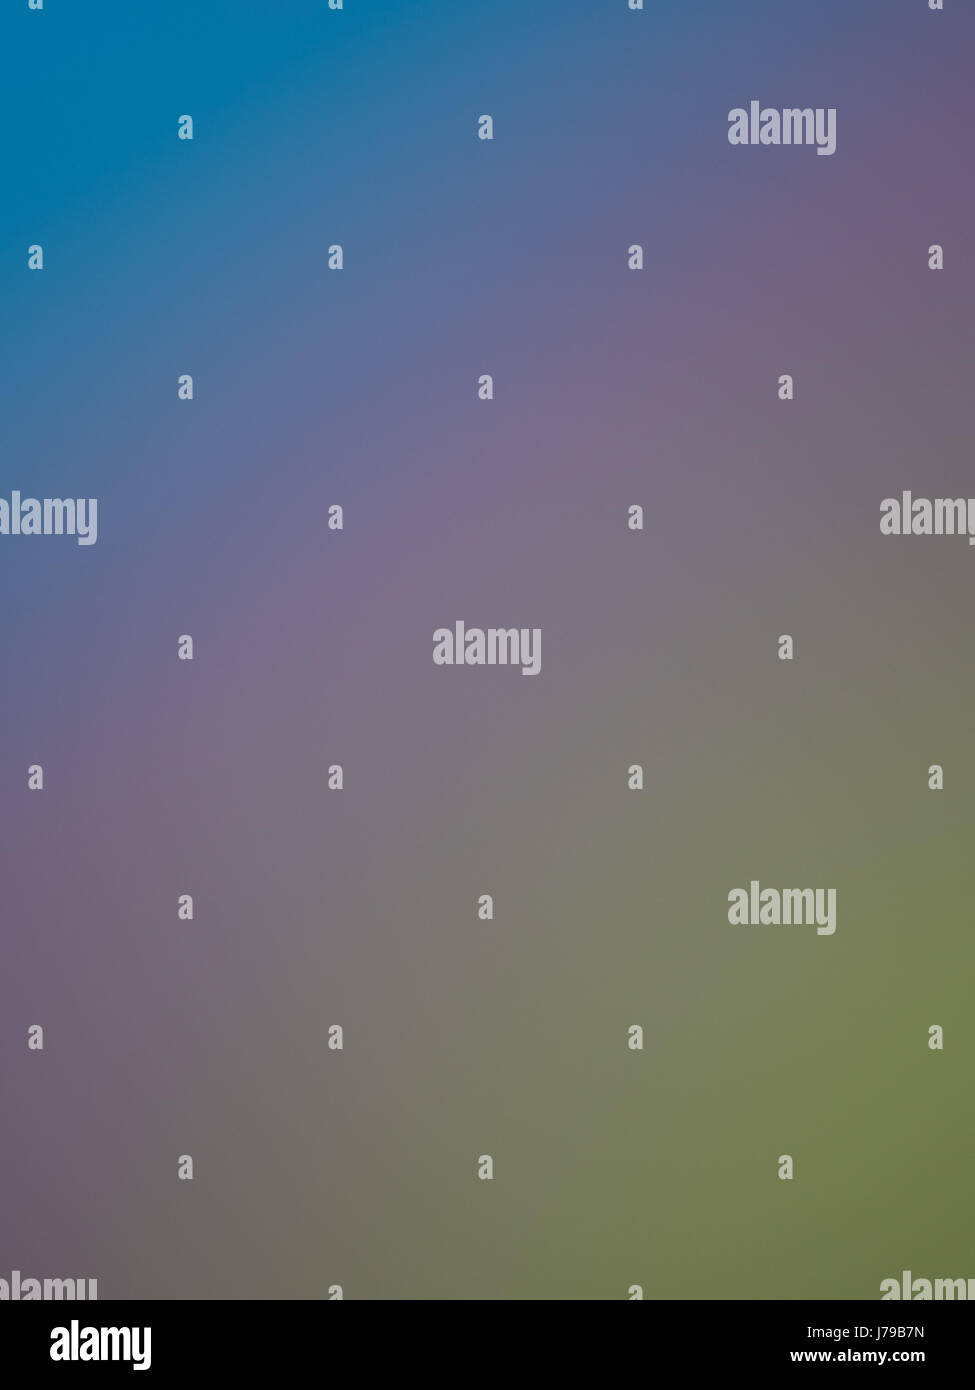 colorful, smooth and blurry background with diagonal transitions - Stock Image